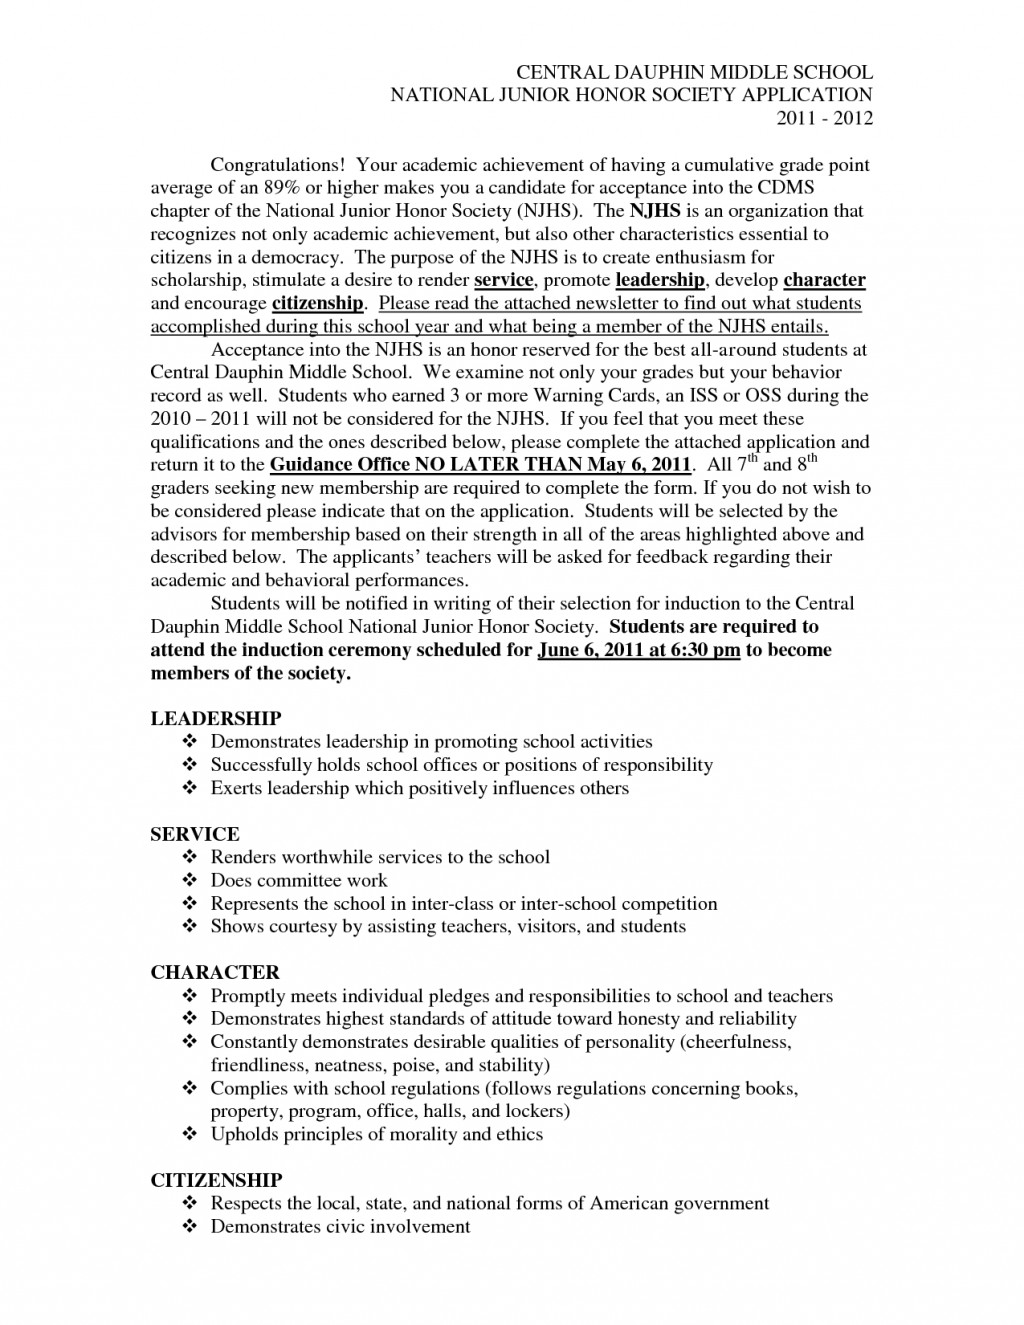 009 Essay Example National Honors Society Writing Introductions For Honor Essays L Unique Conclusion Samples Character Large